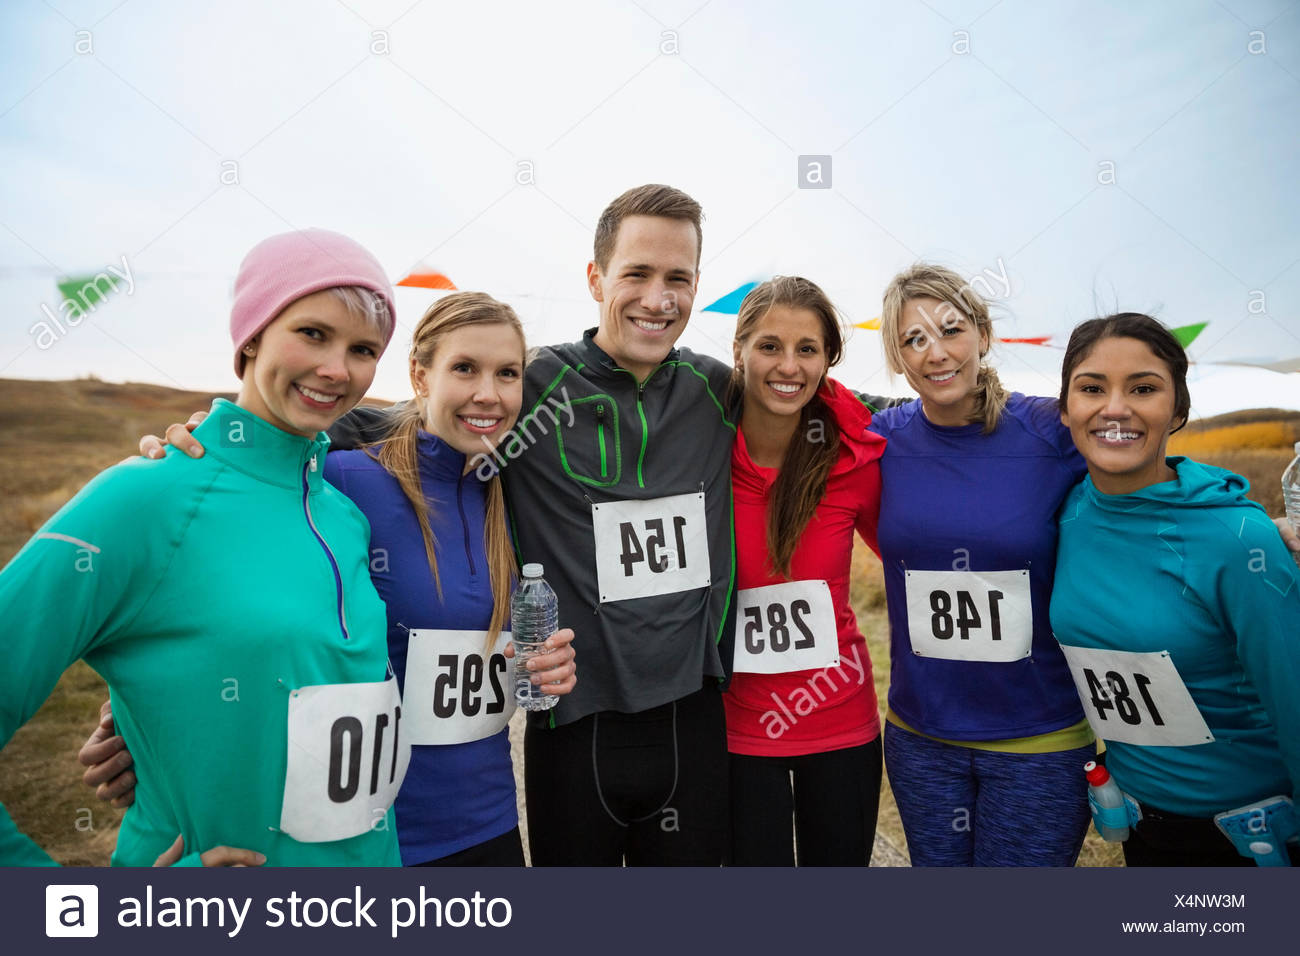 Portrait of confident marathon runners - Stock Image